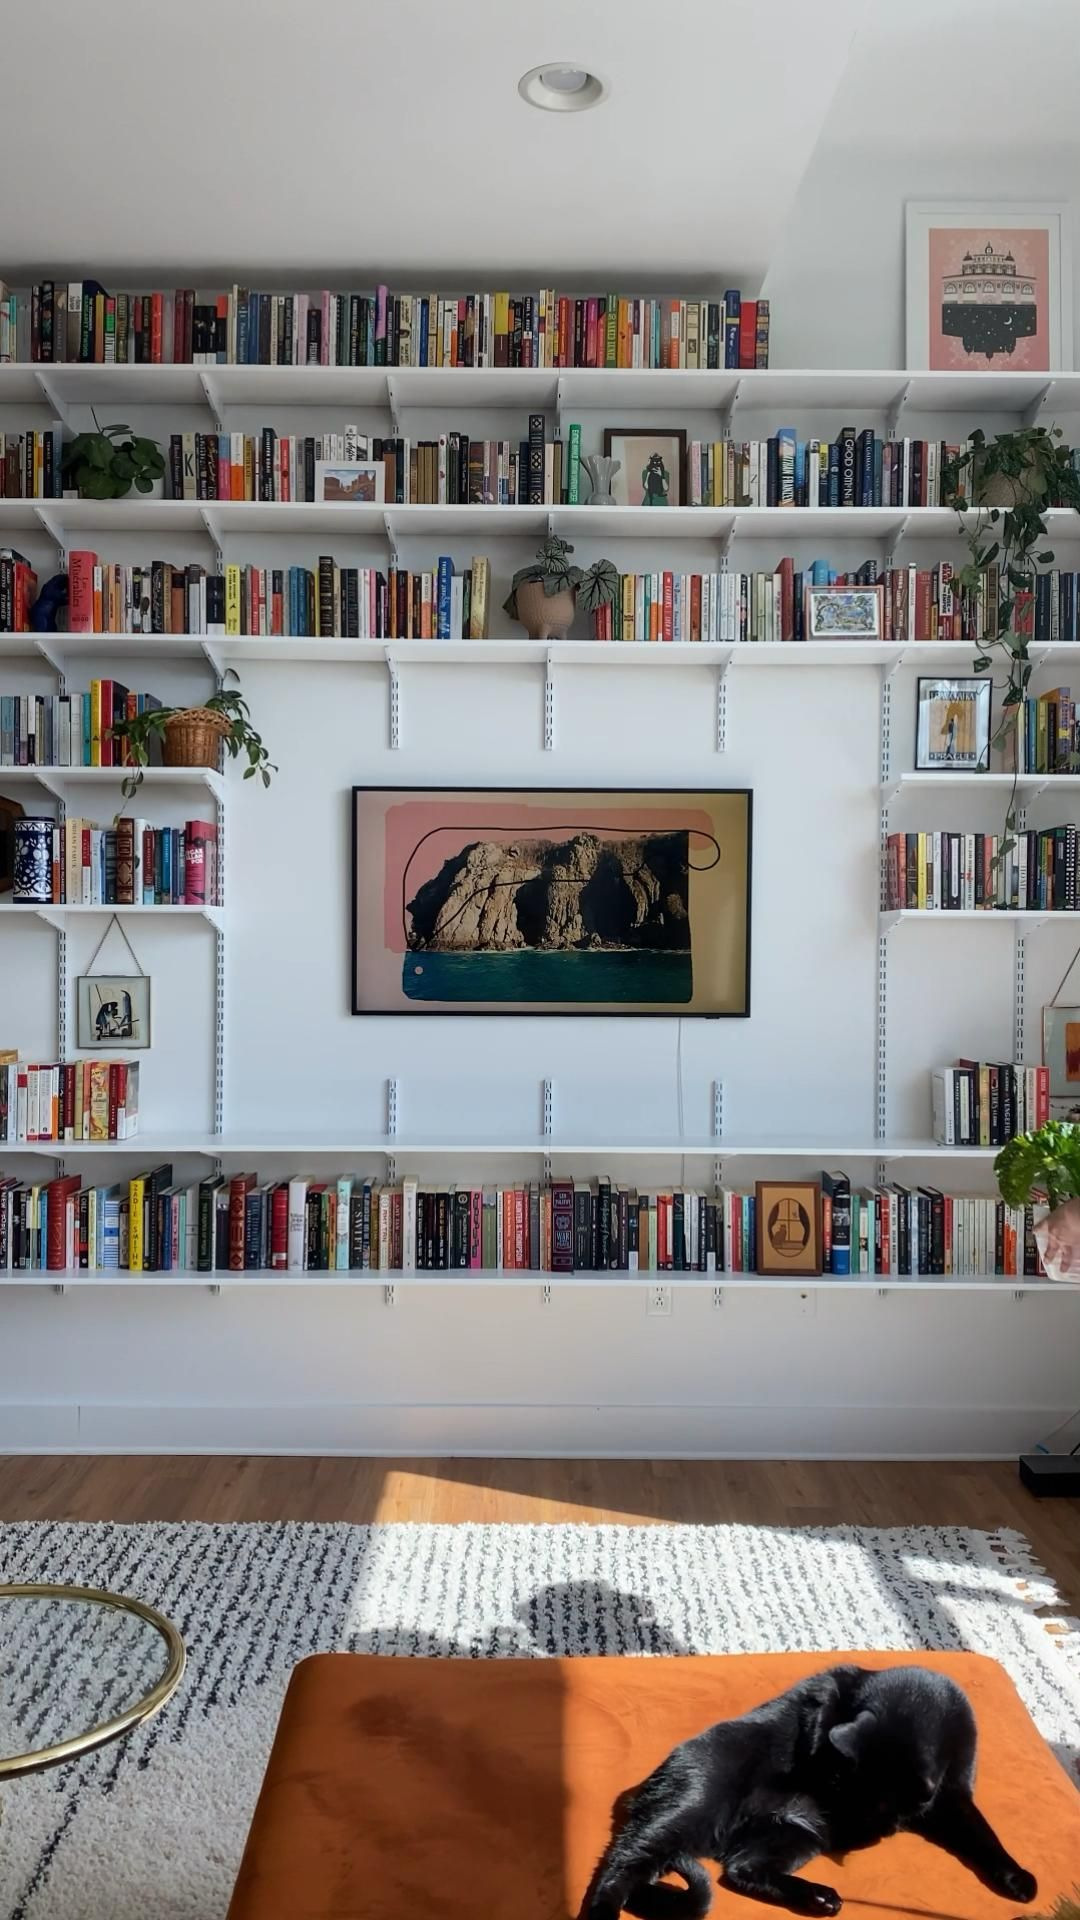 Home library ideas: 15 beautiful designs for bibliophiles and bookworms